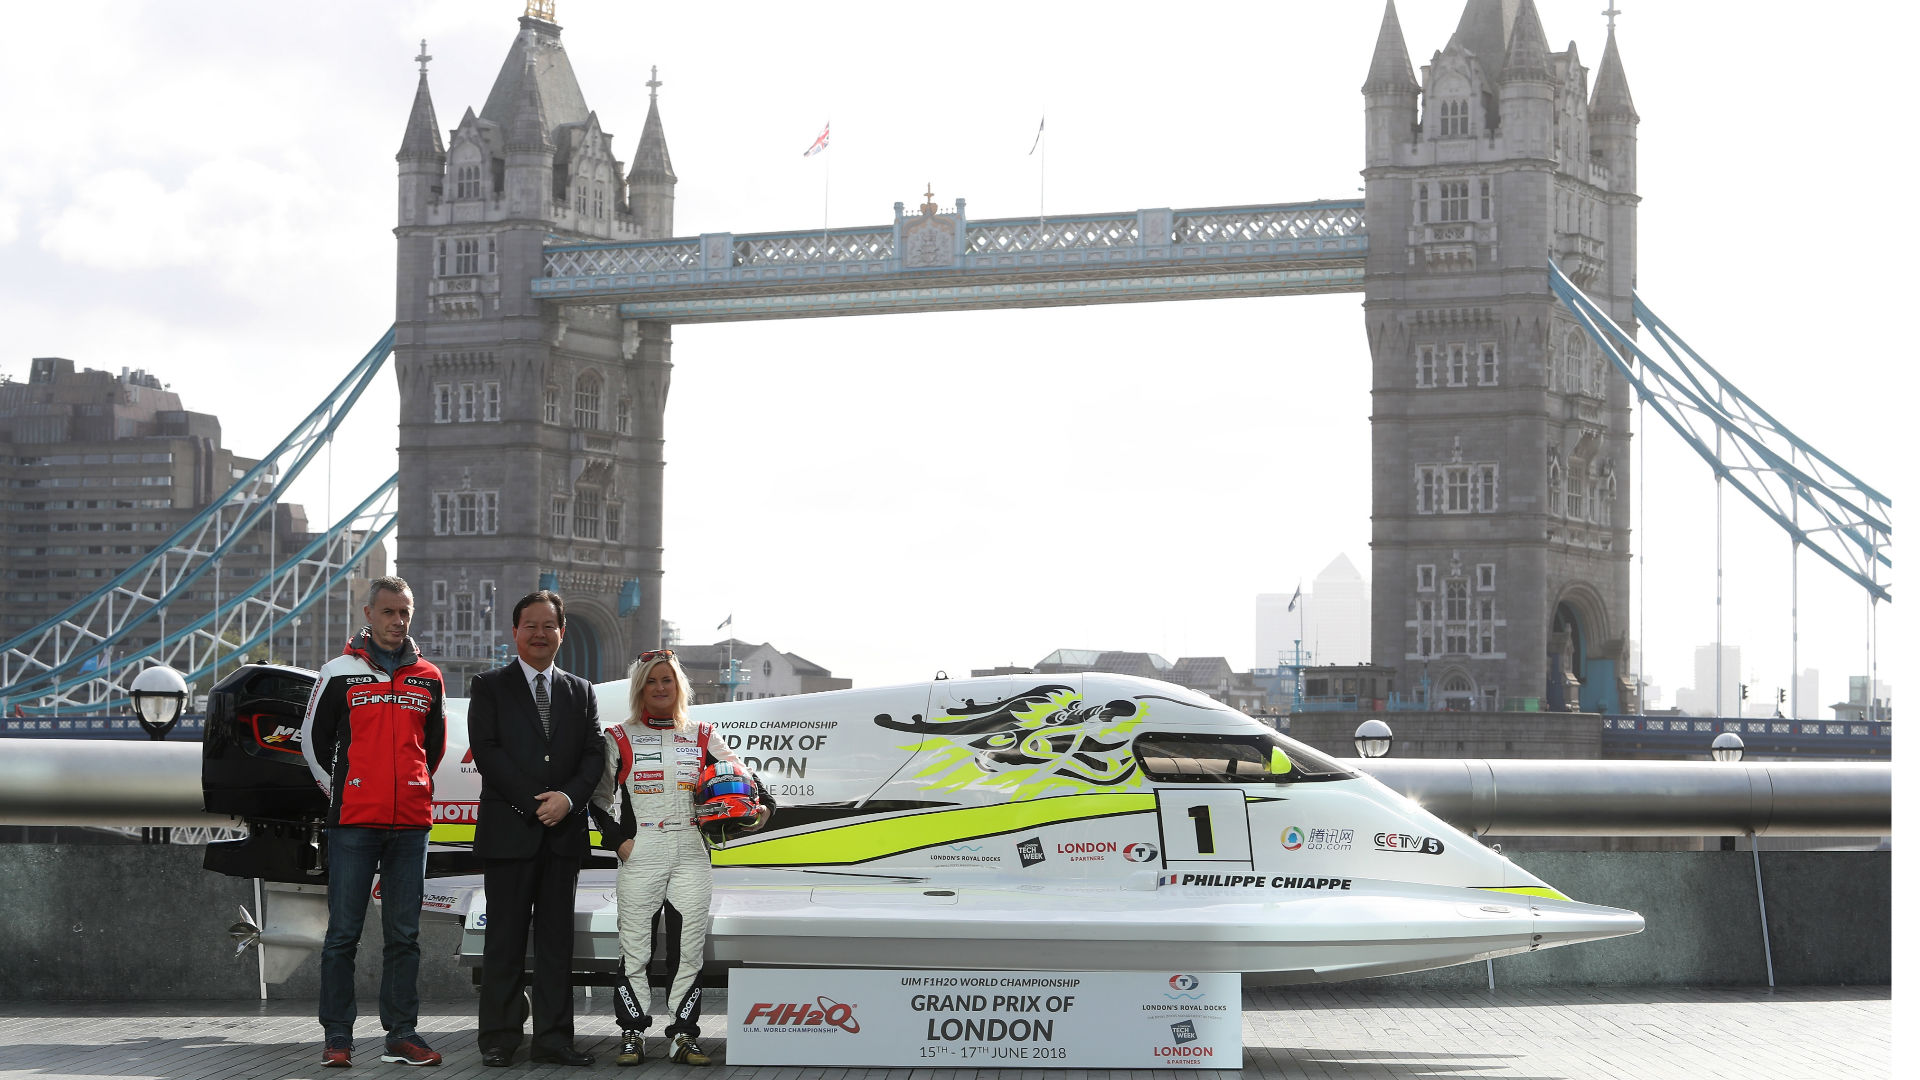 The F1H20 Powerboat racing World Championship Grand Prix is coming to London. Image courtesy of Getty Images/Chris Lee